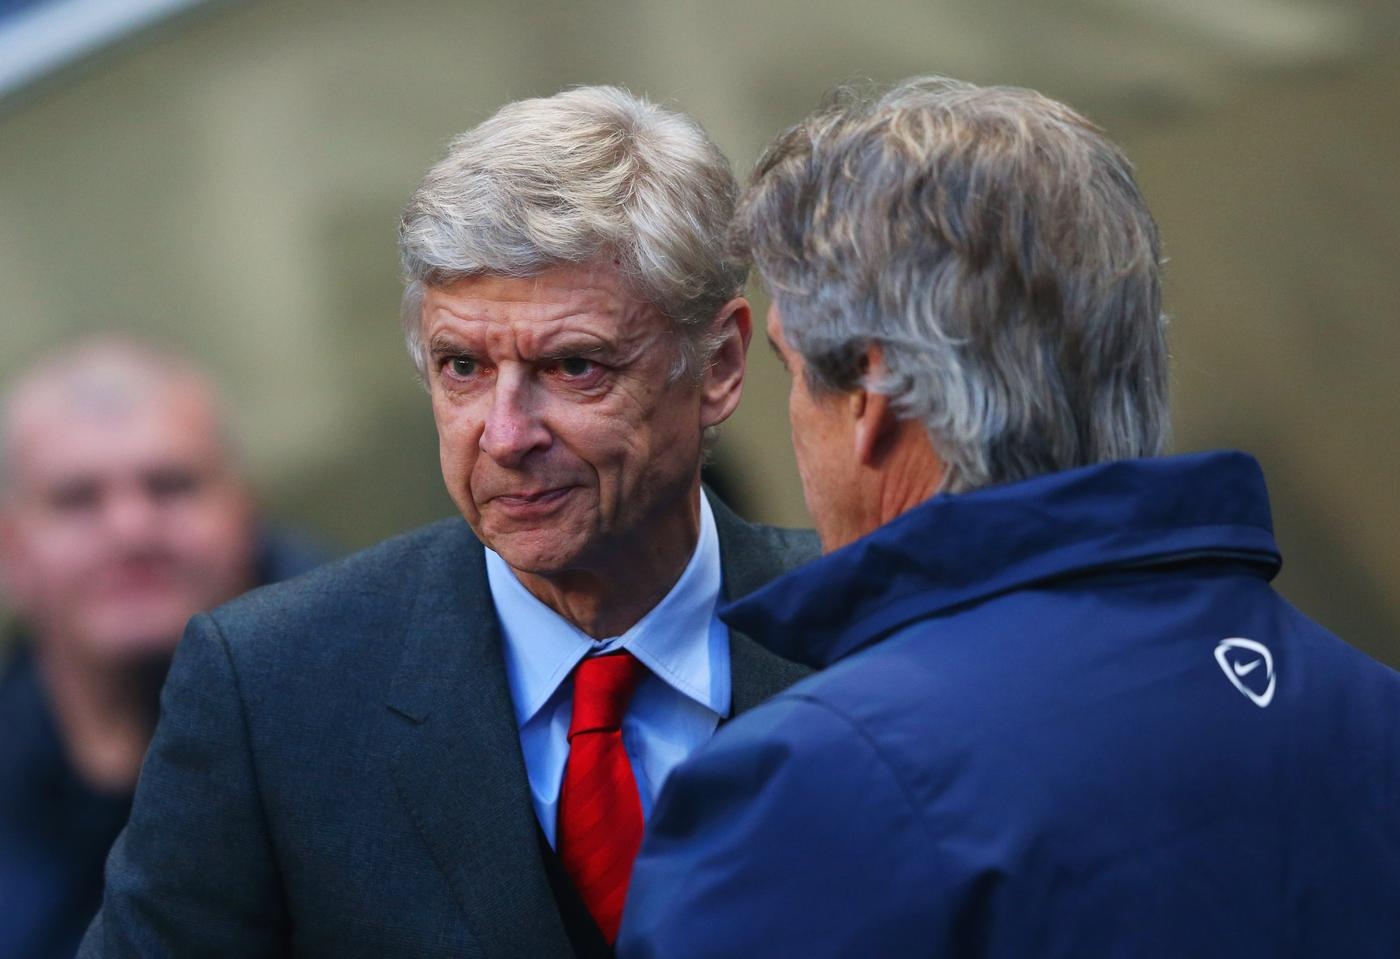 Arsene Wenger invites suggestions for new Arsenal defenders after win at Manchester City